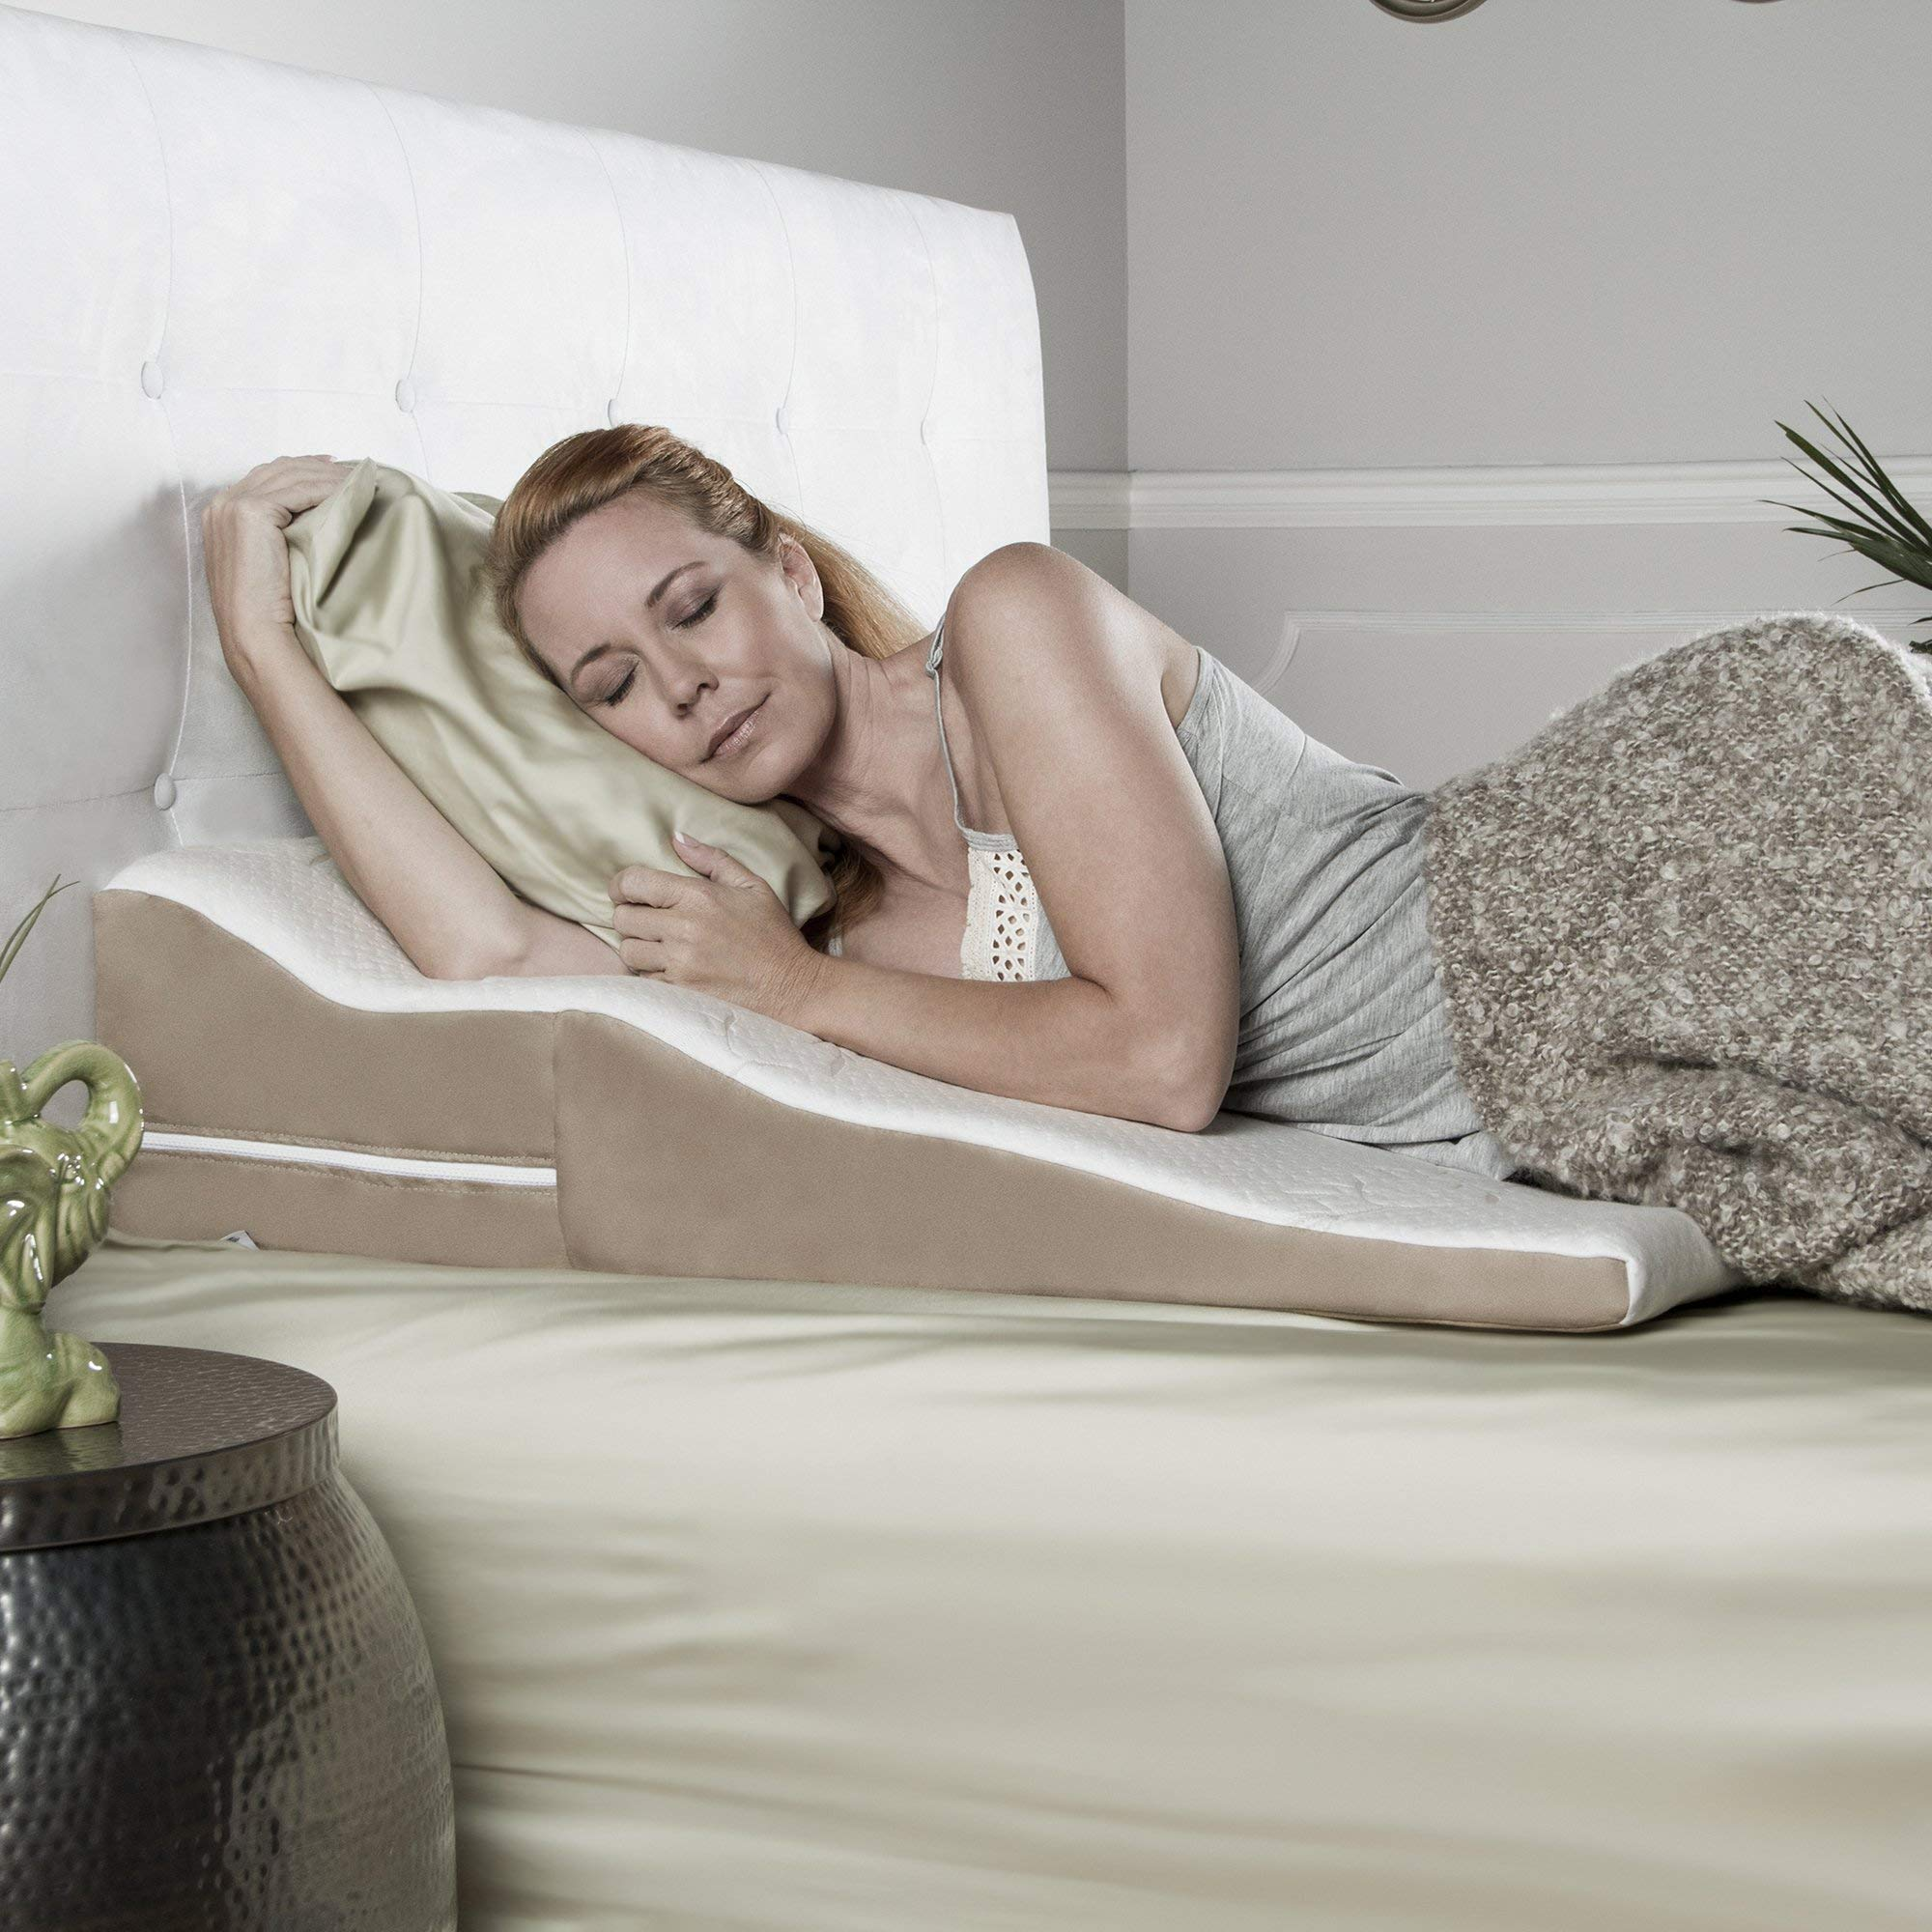 Avana Contoured Bed Wedge Support Pillow for Side Sleepers with Gel-Infused Cooling Memory Foam by Avana